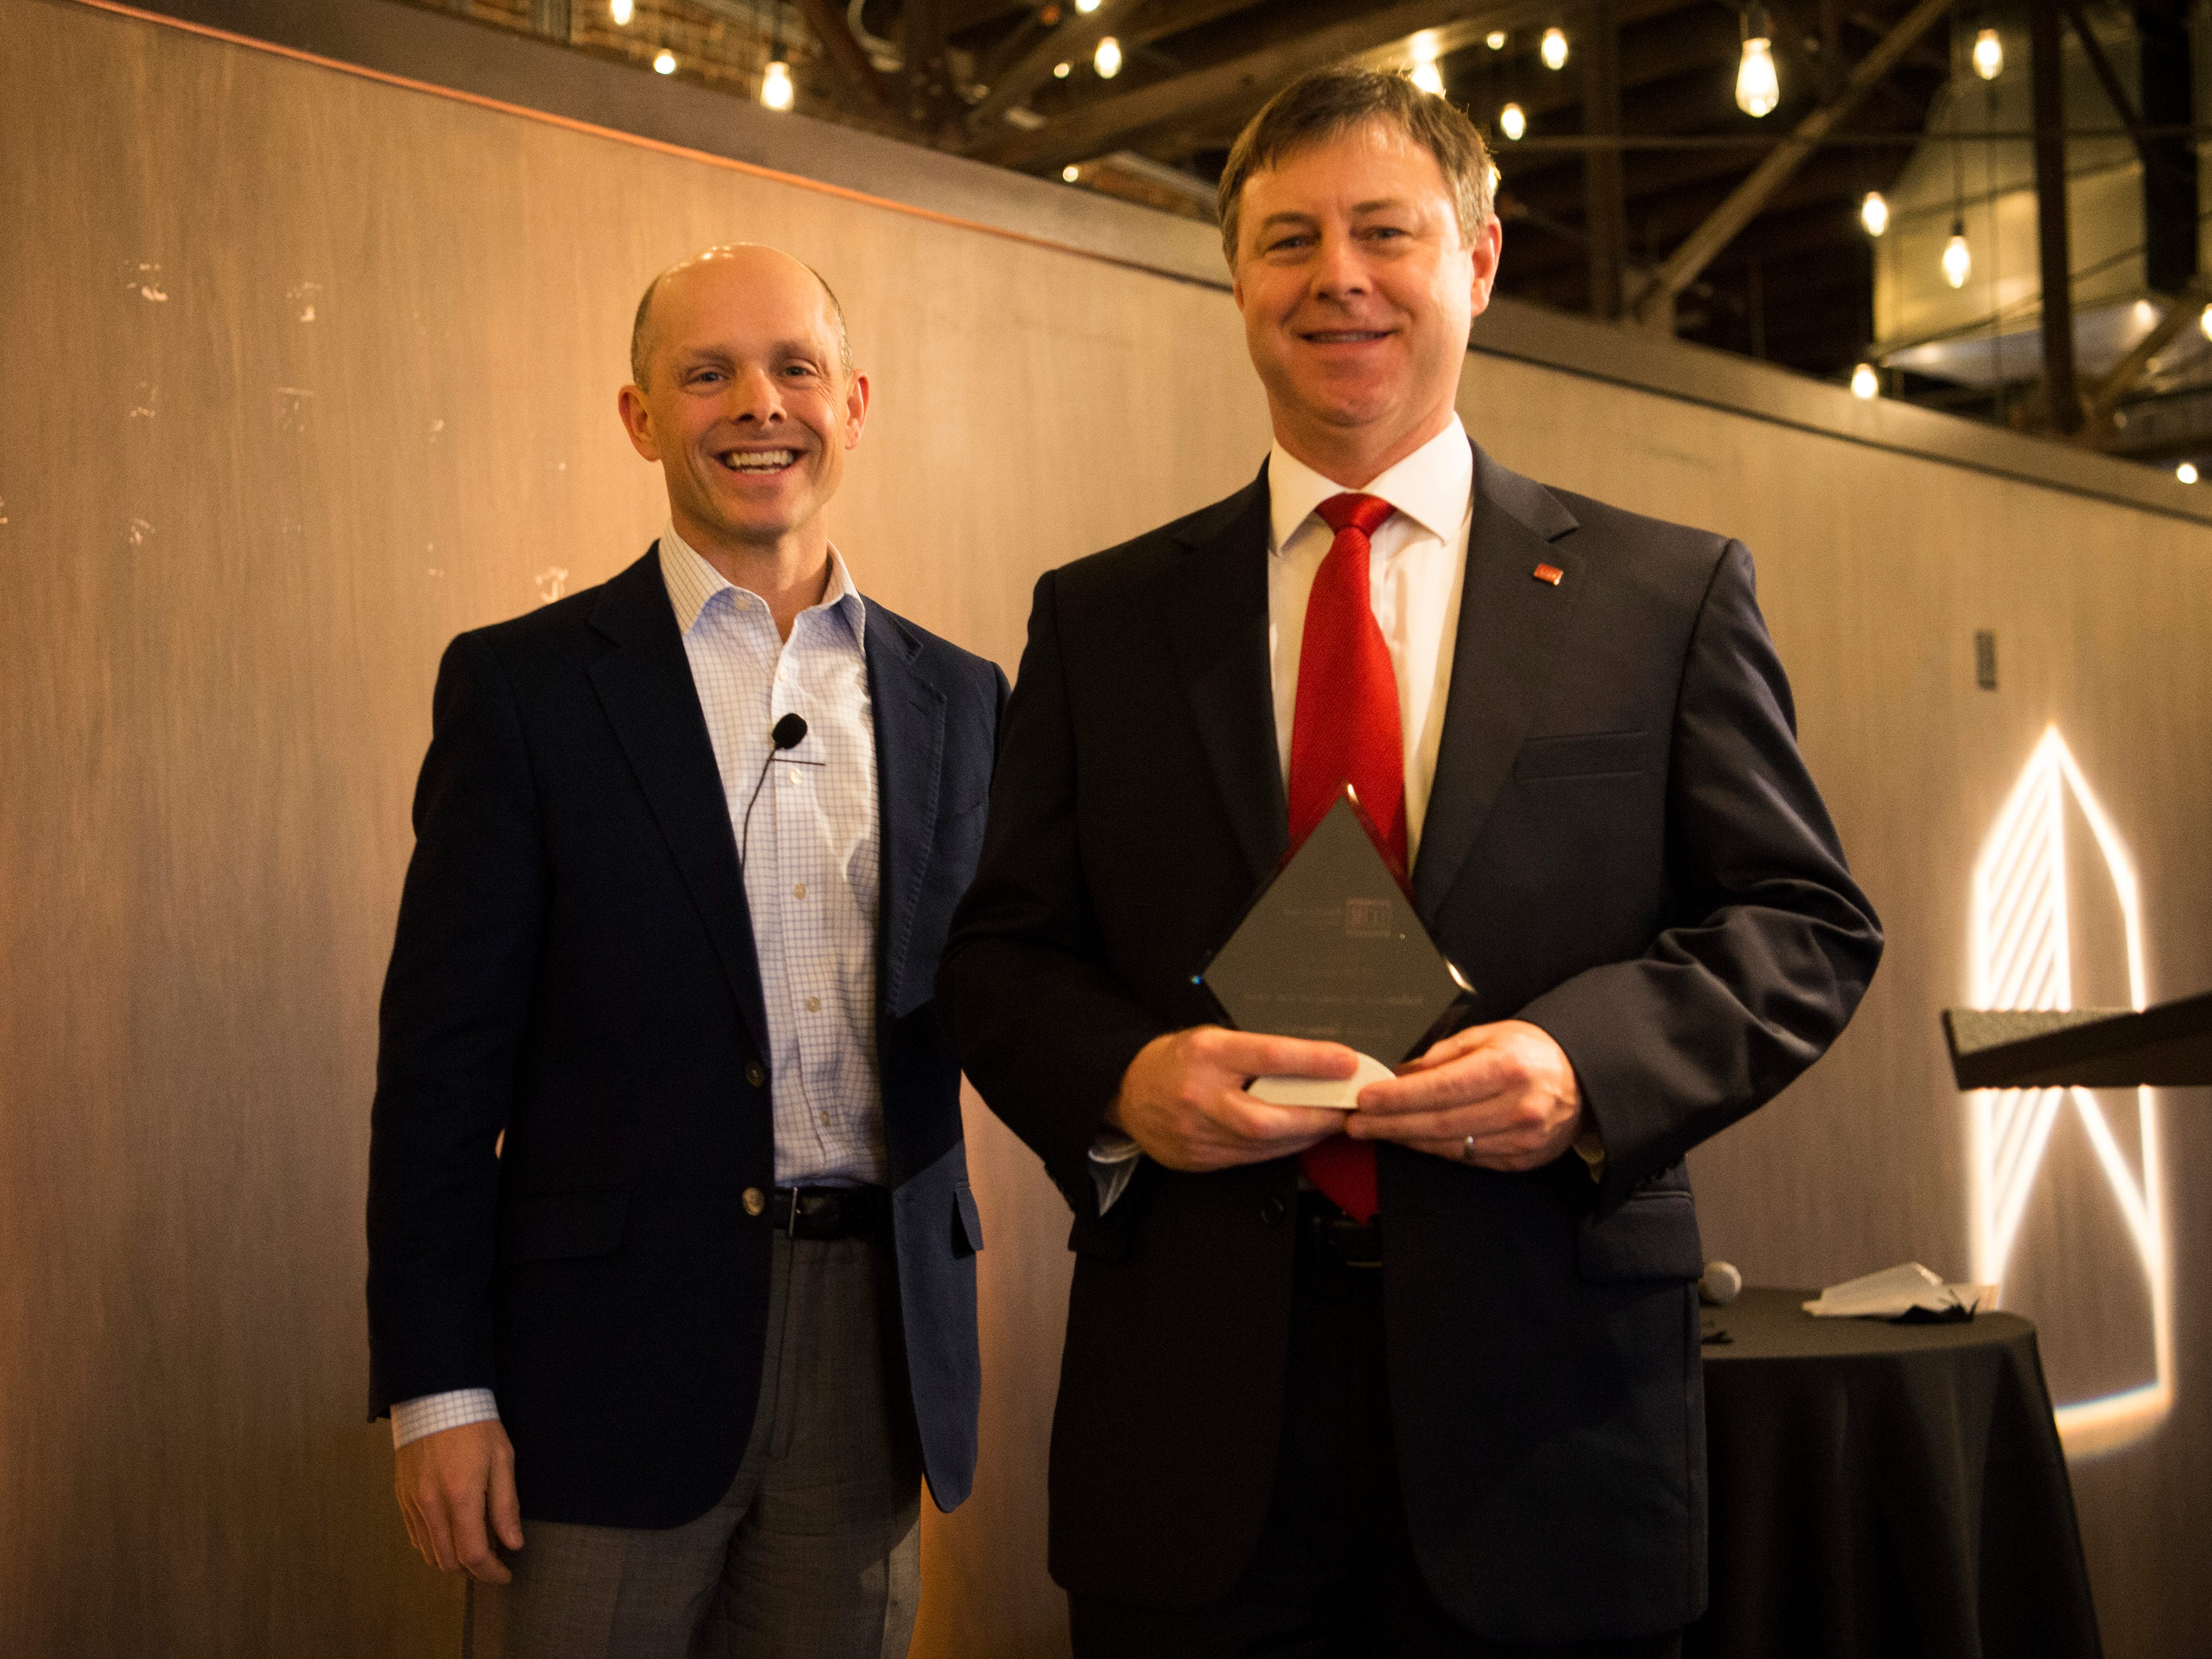 James Roberson, right, is awarded Industrial Broker of the Year at the Commercial and Residential Real Estate Awards held at The Press Room in Knoxville on Tuesday, February 12, 2019.